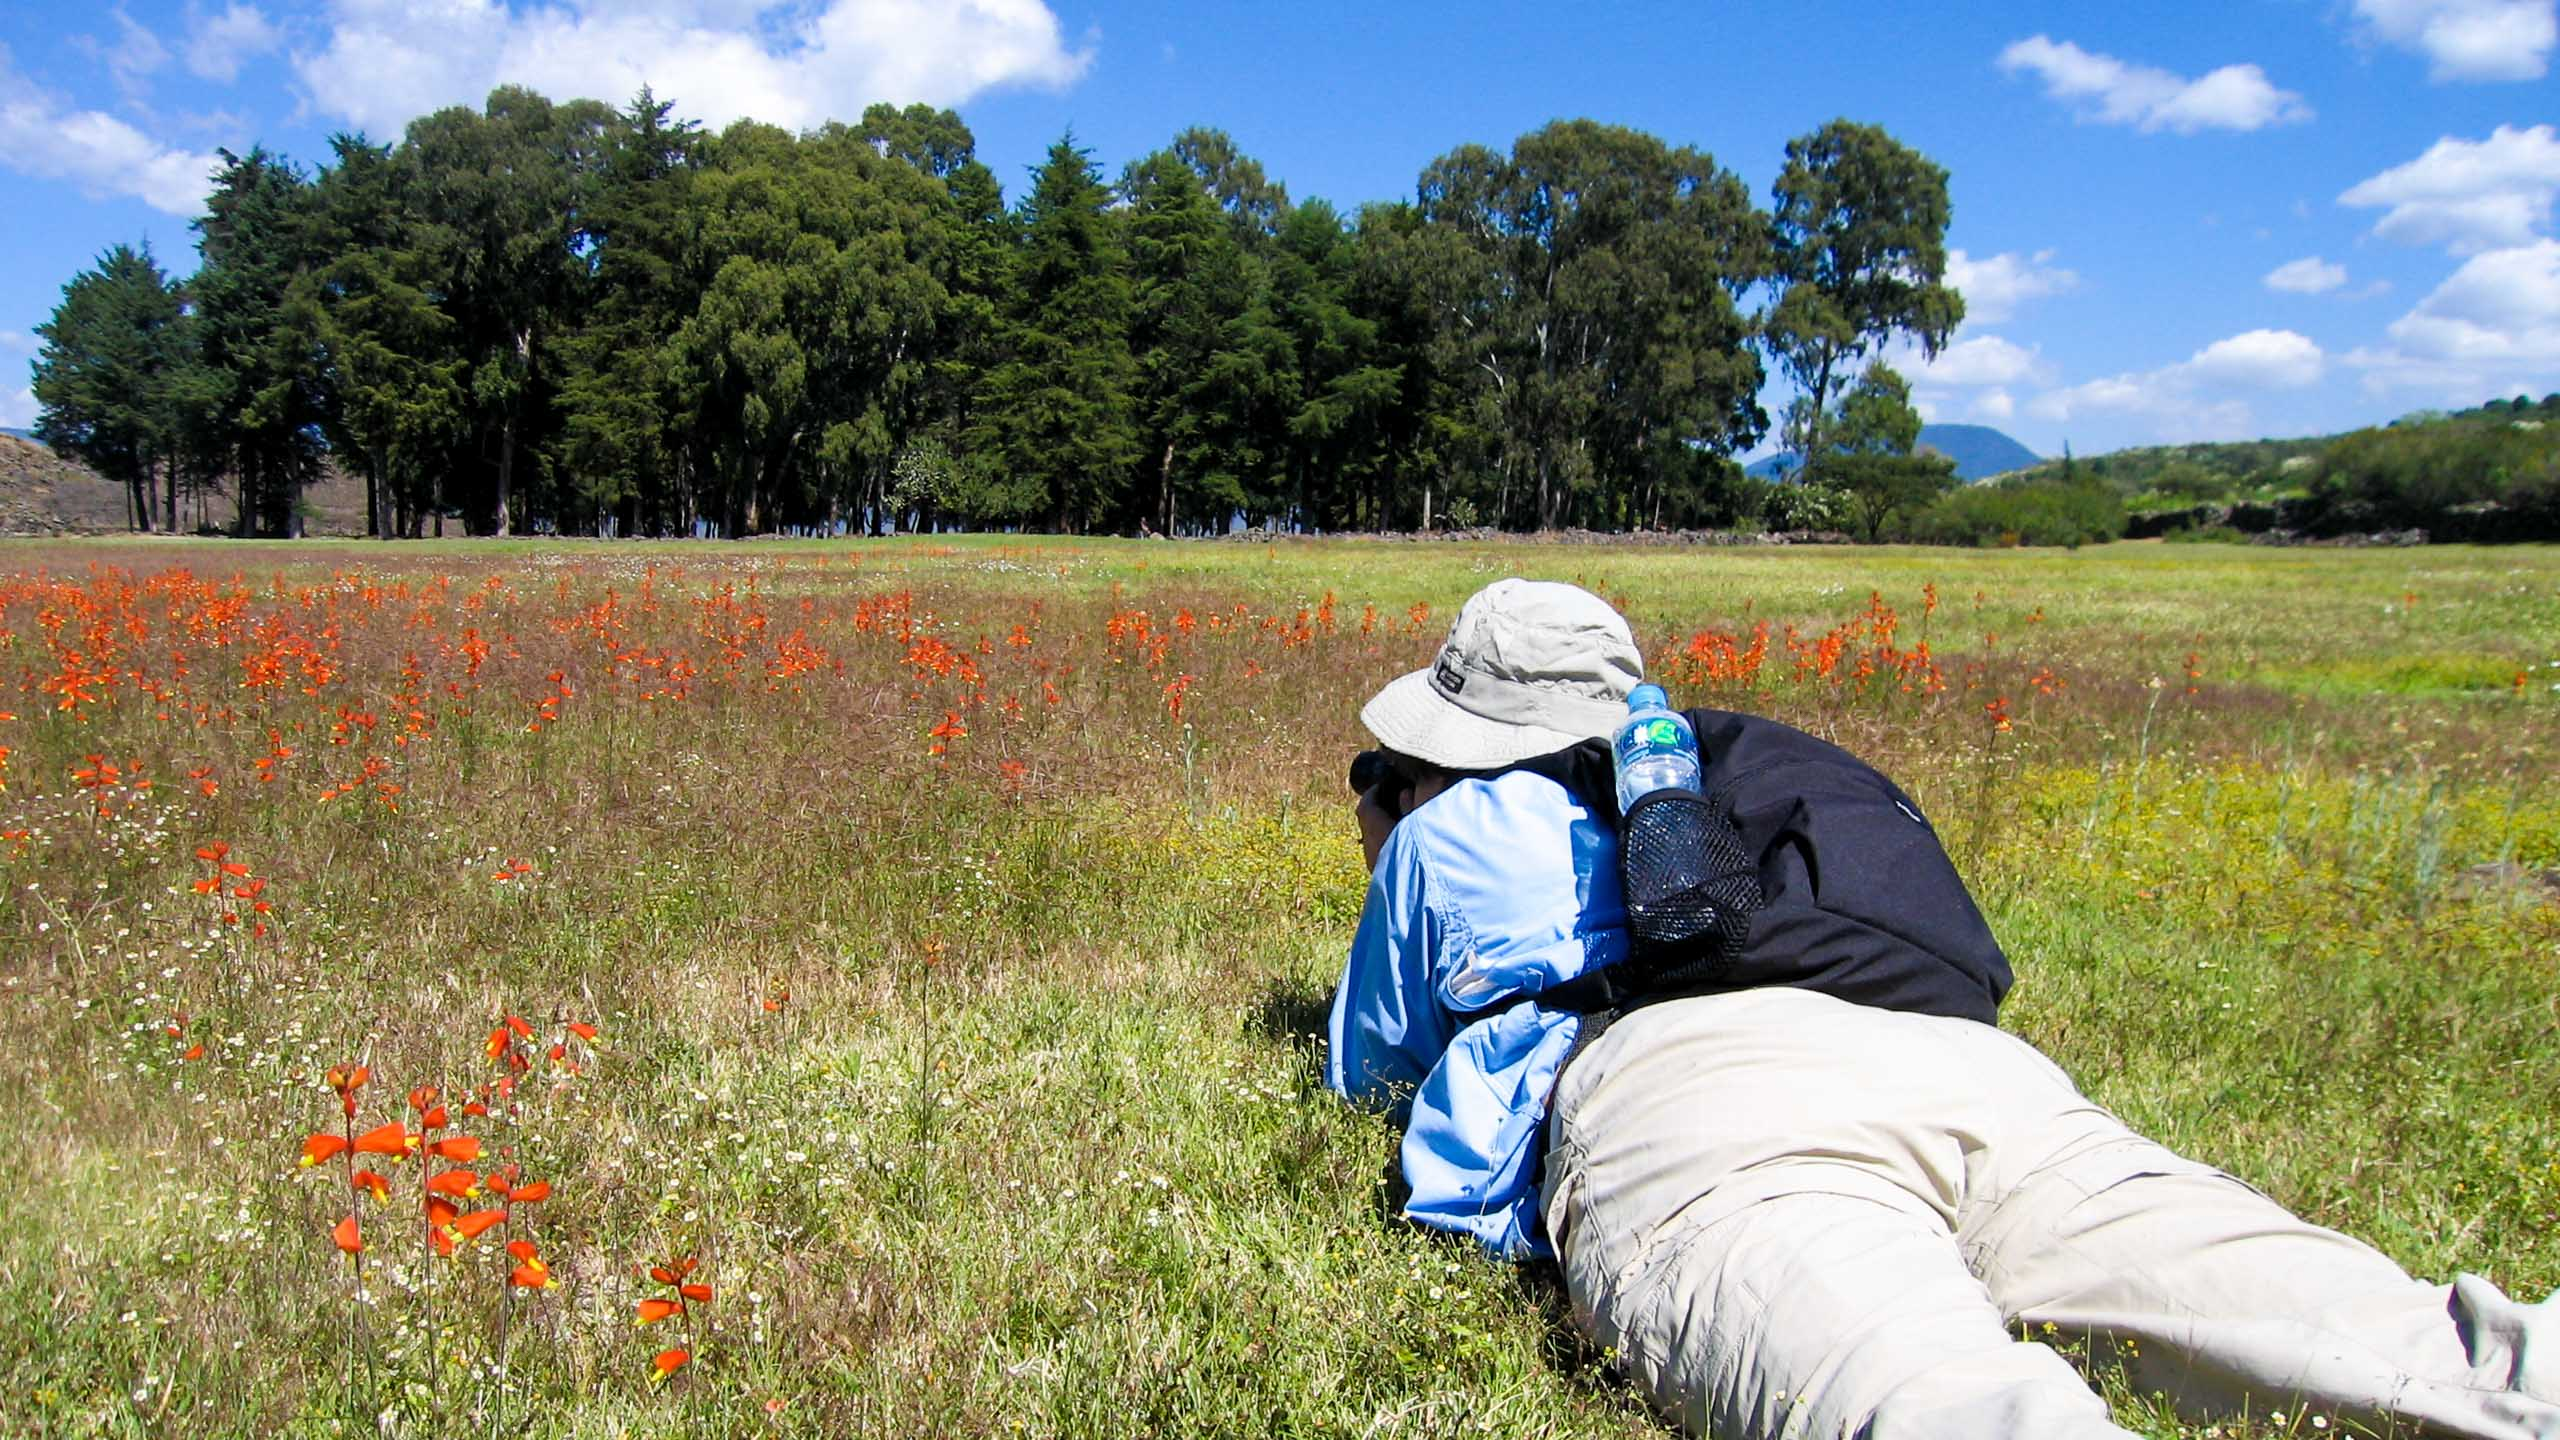 Traveler lies on stomach to take photo of field